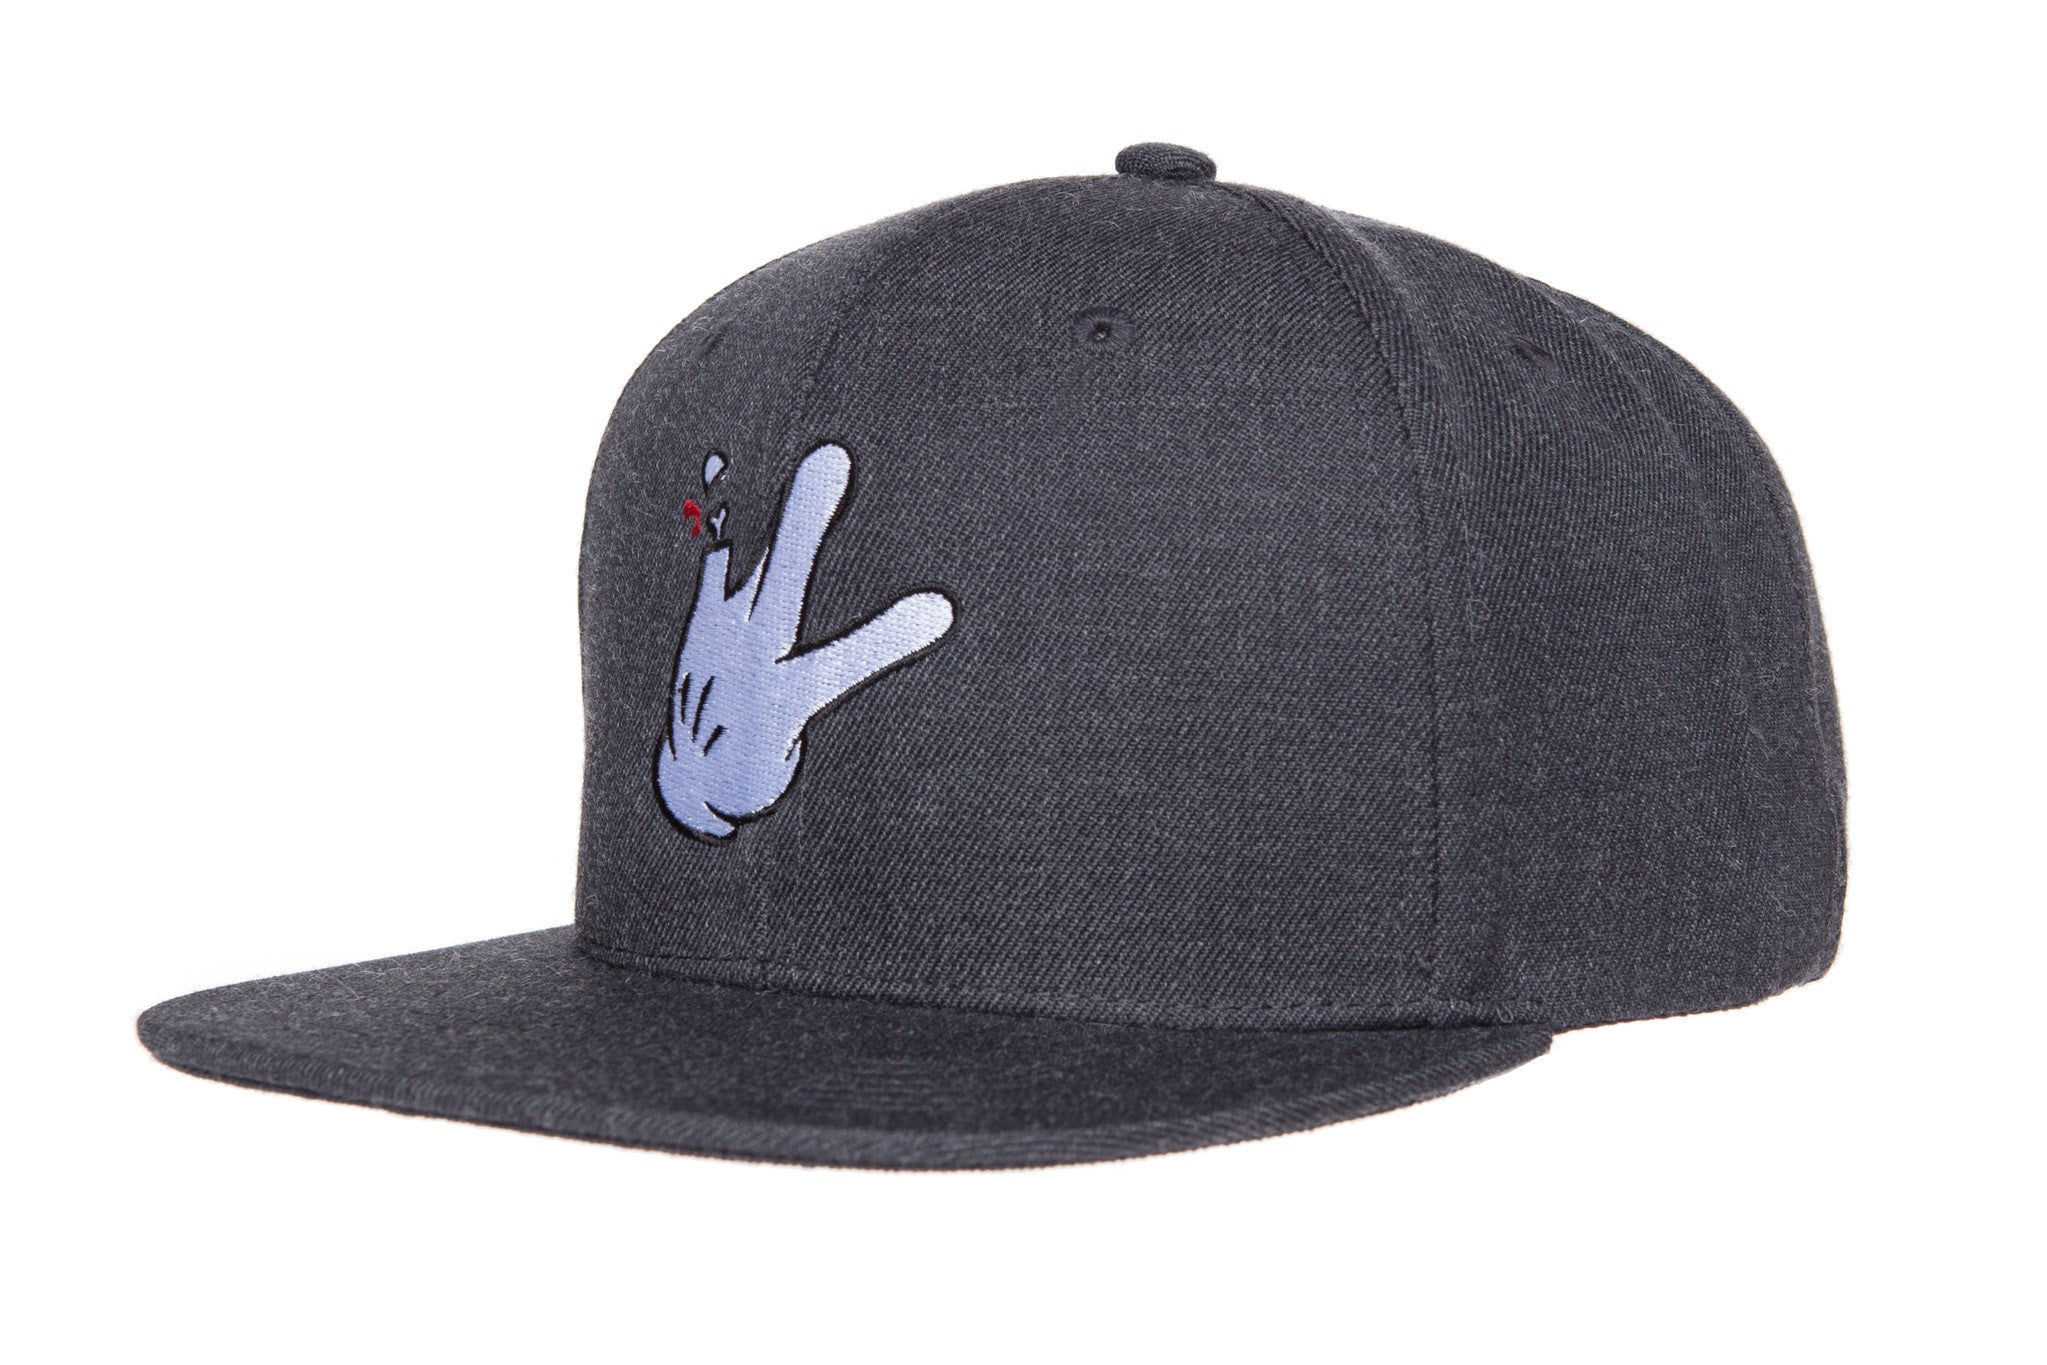 RaceKraft Cartoon Glove Snapback (Dark Grey)